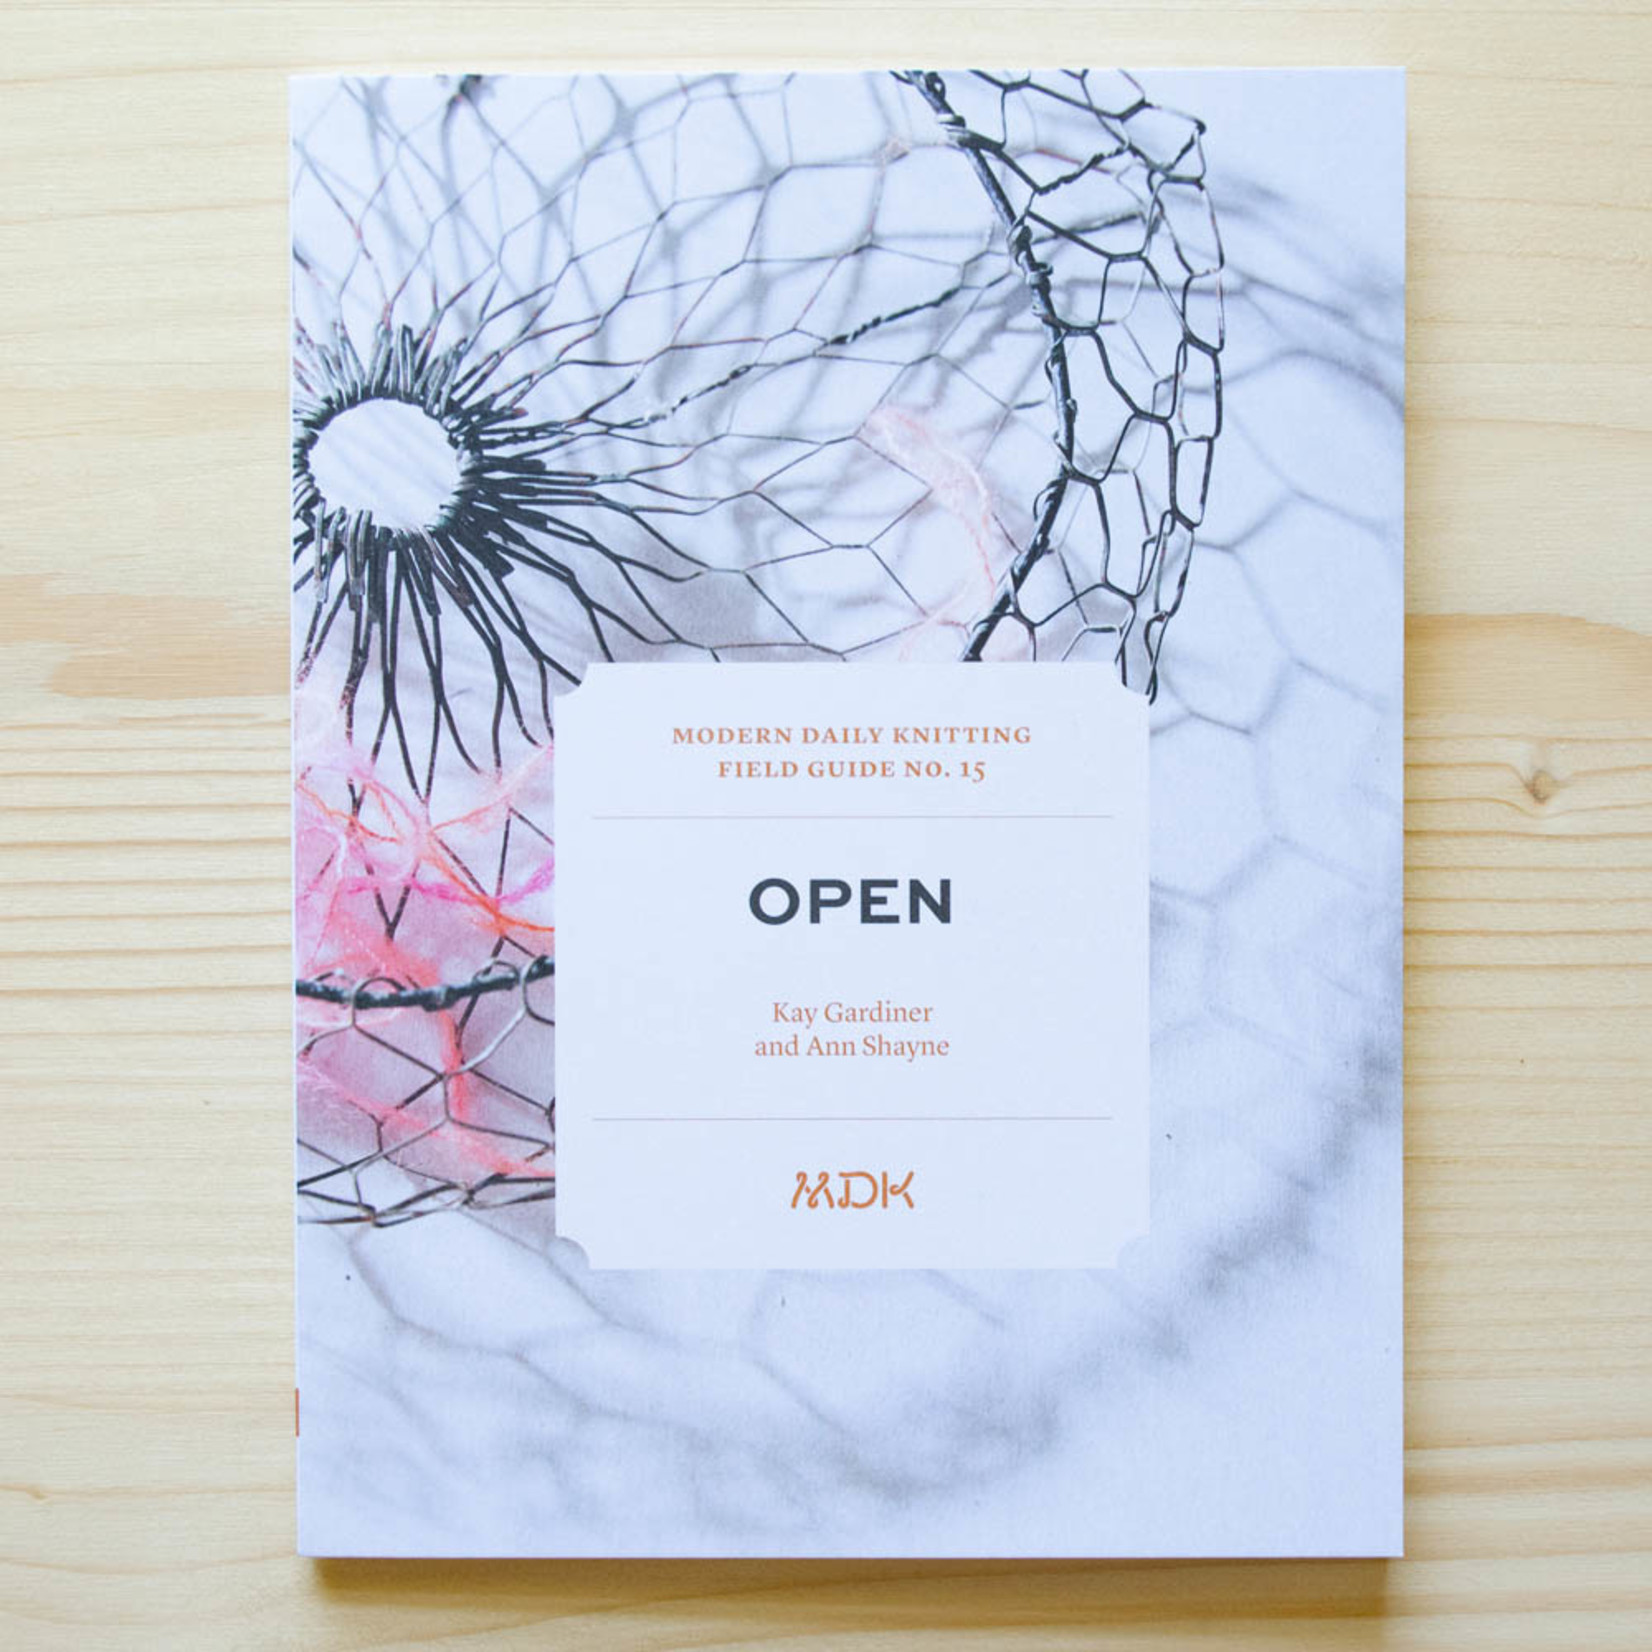 Modern Daily Knitting Modern Daily Knitting Field Guides